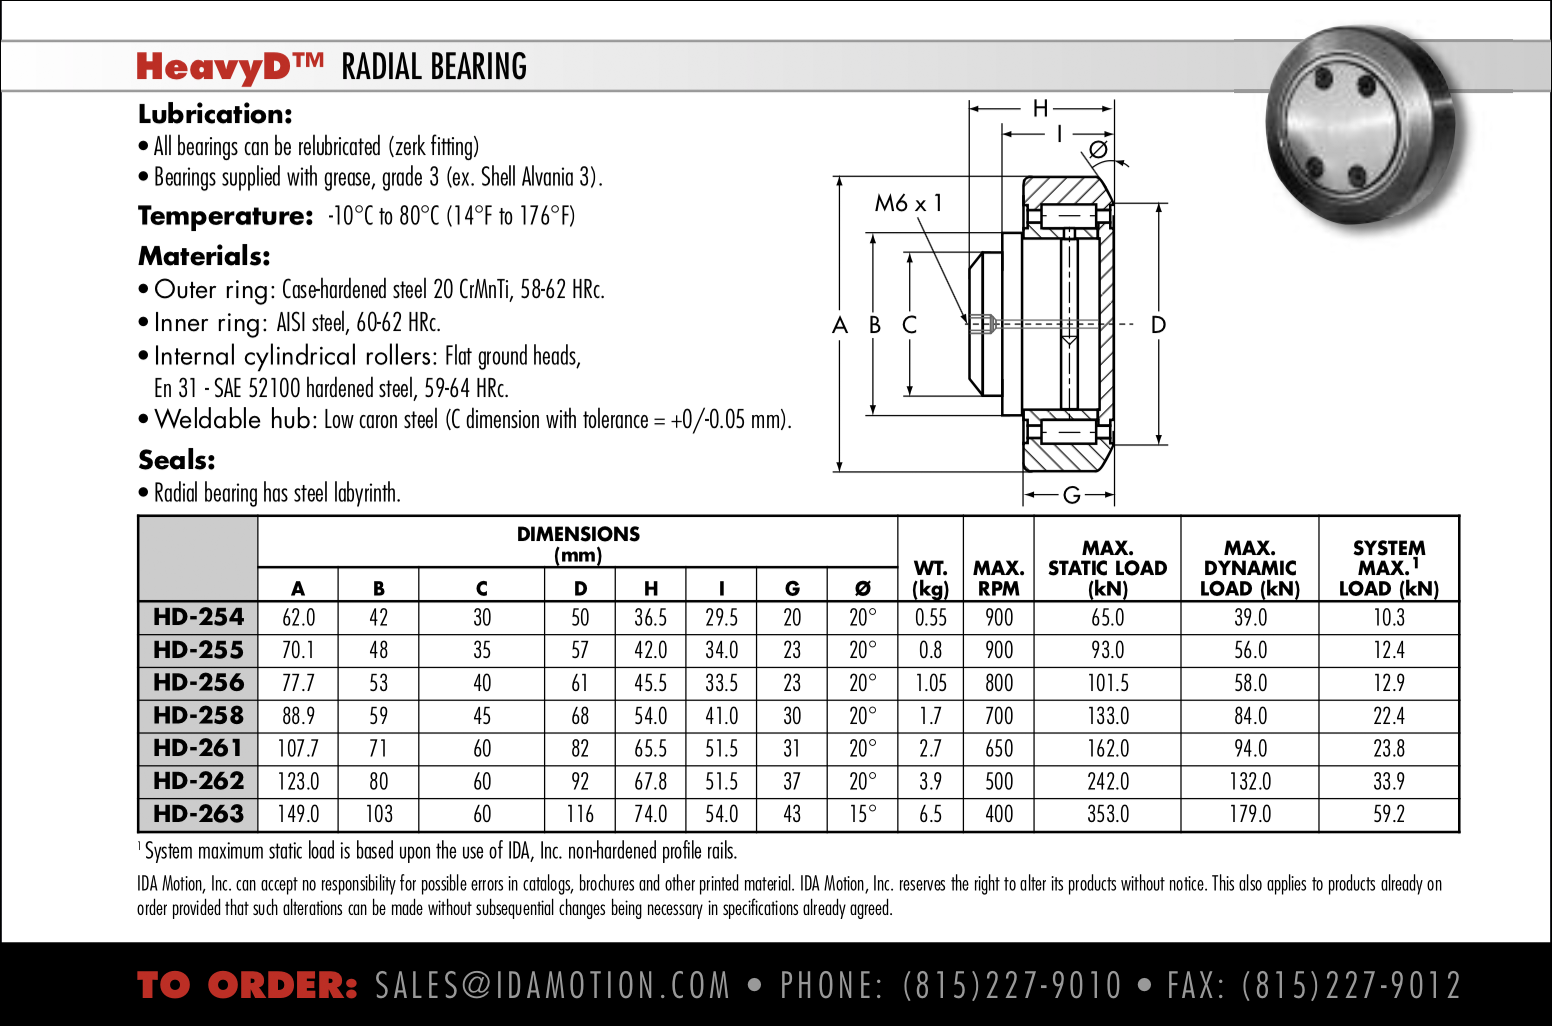 HeavyD Radial Bearing